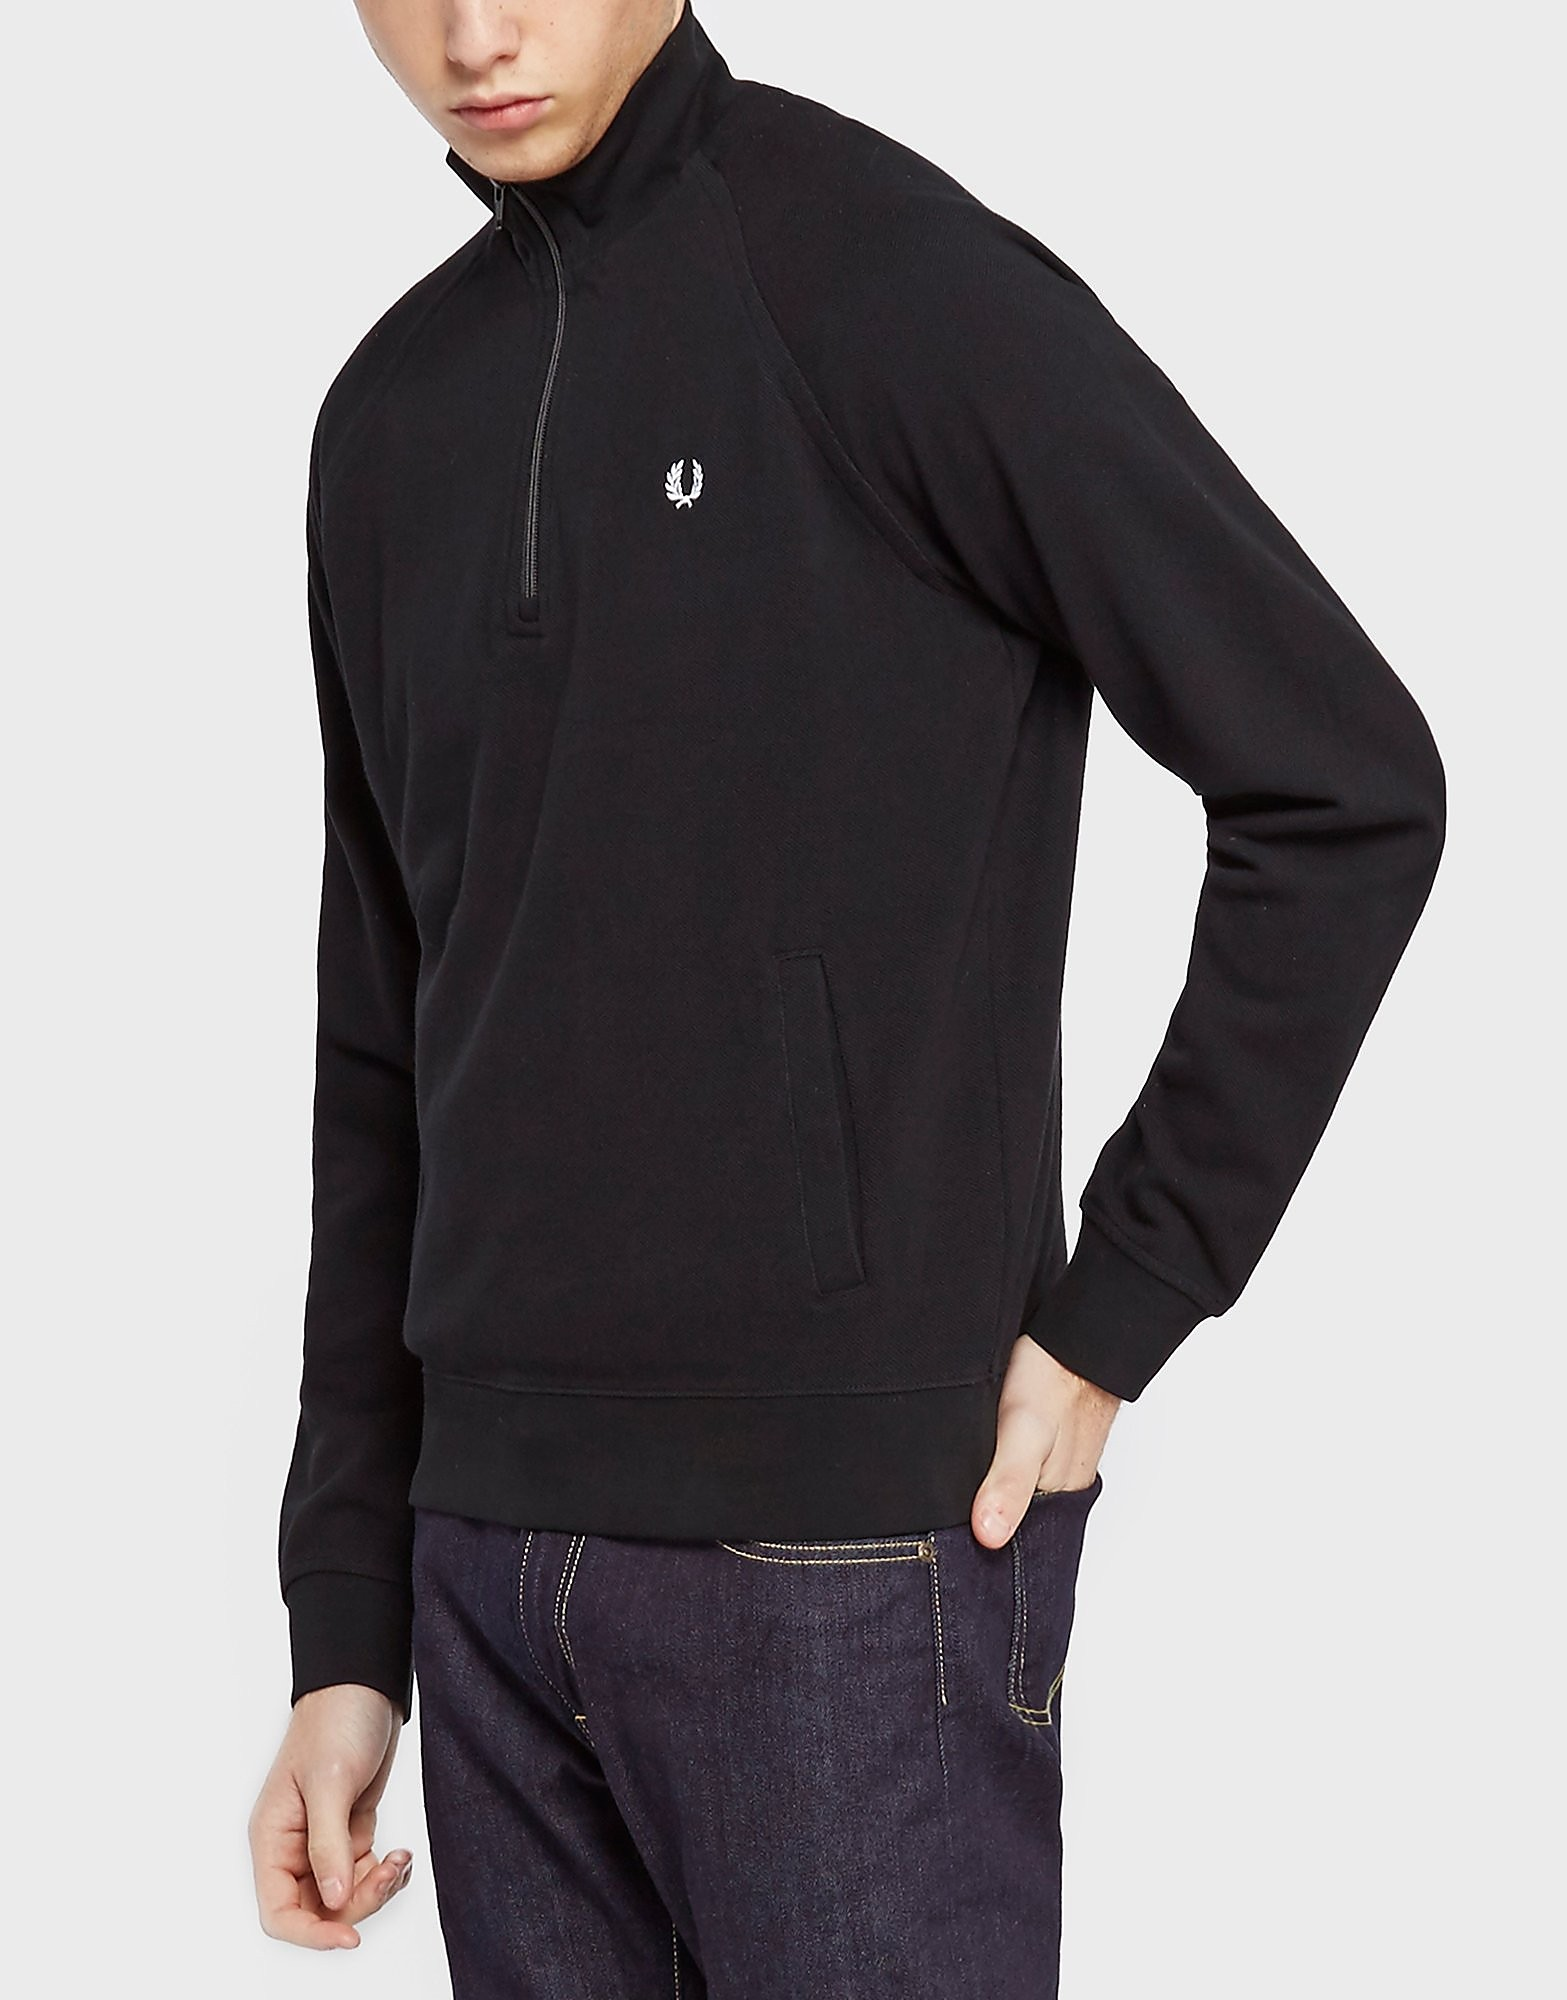 Fred Perry Half Zip Pique Knit